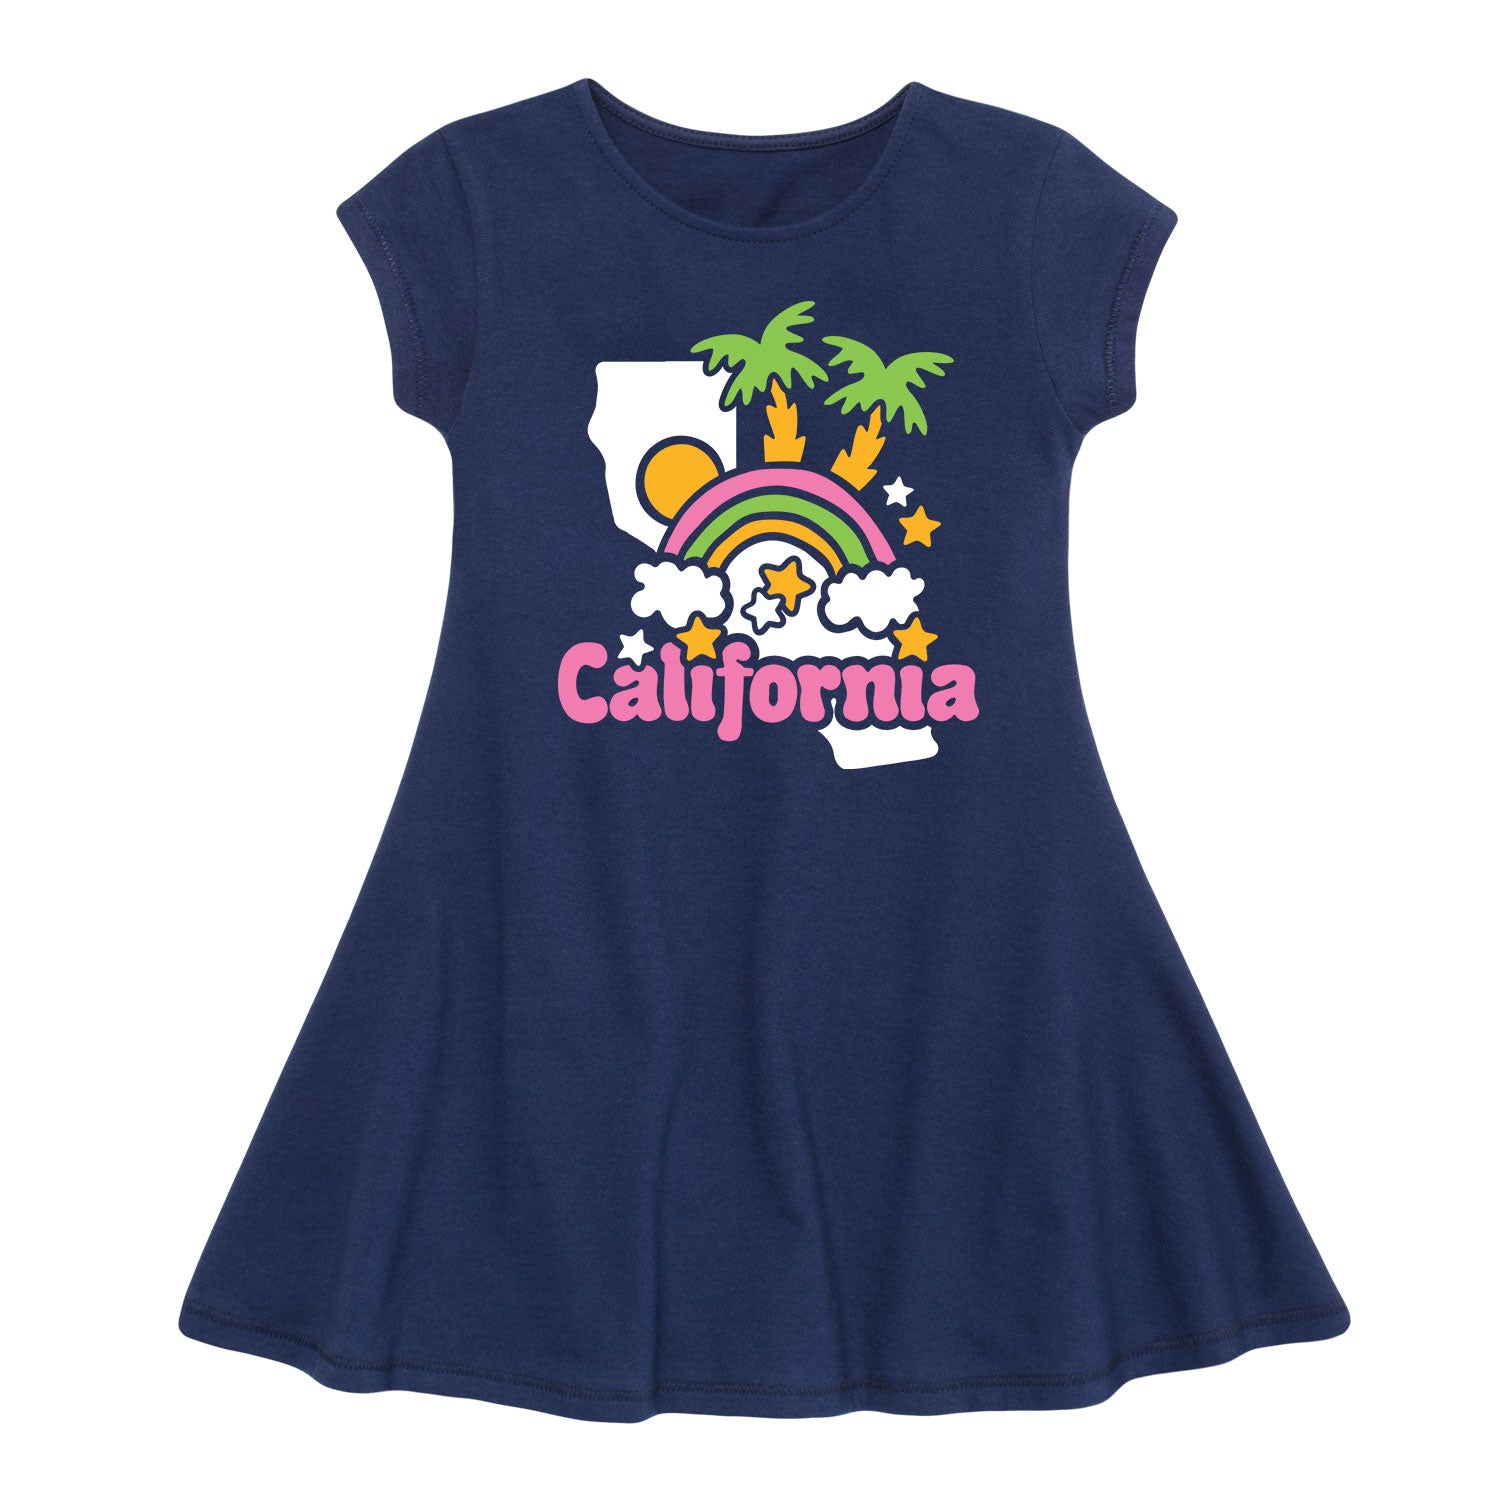 California - Youth Girl Fit And Flare Dress